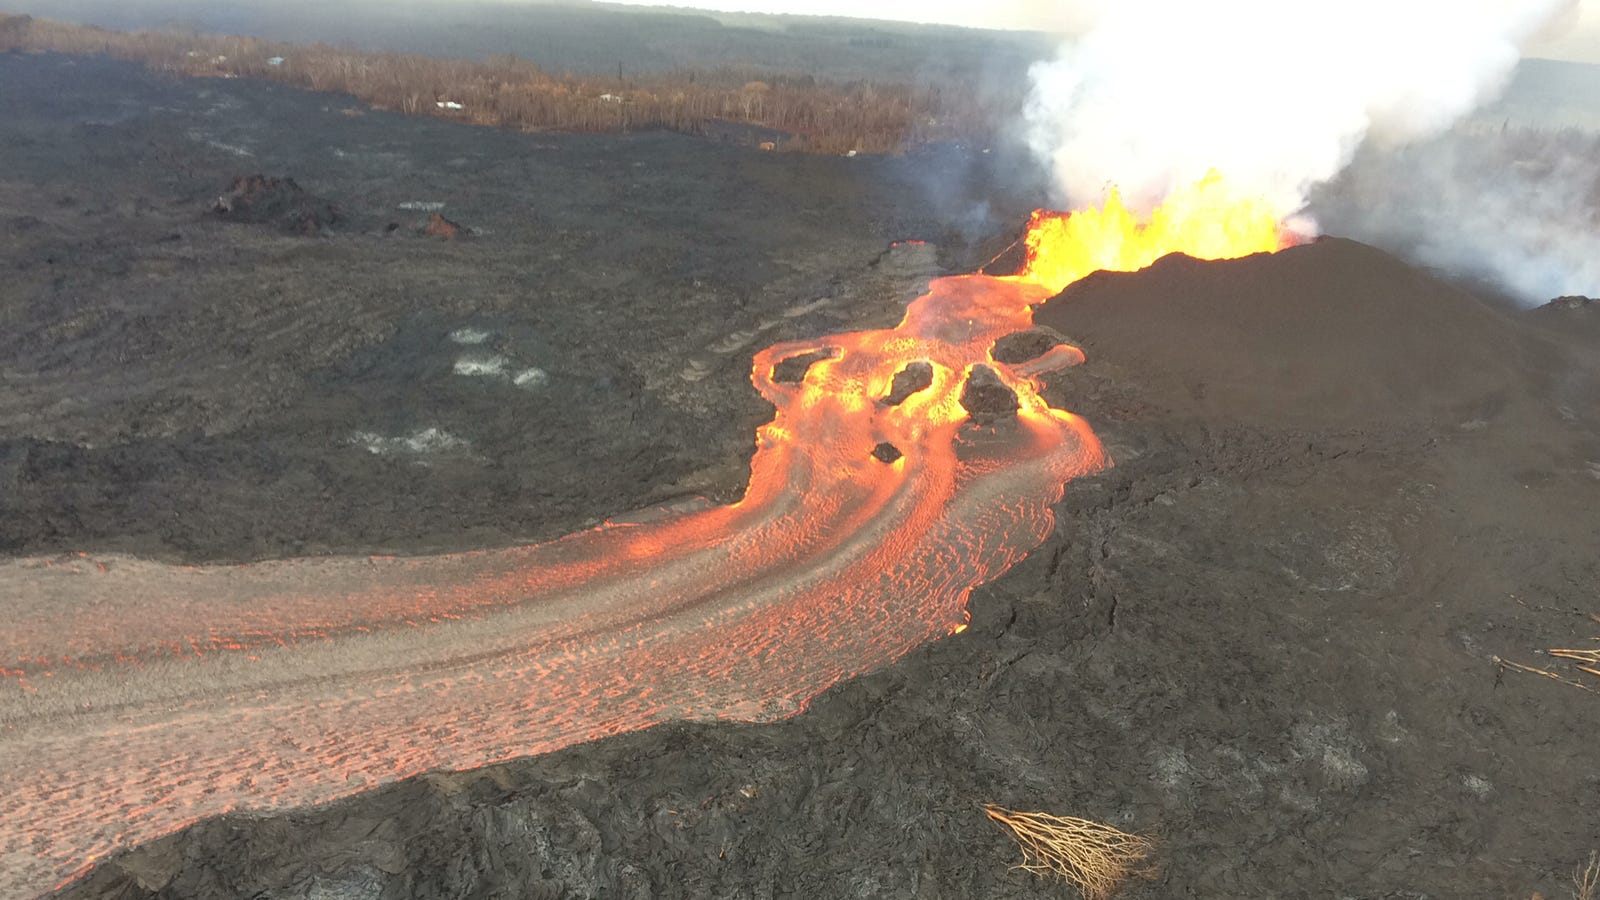 Here's How Much Lava Kilauea's Eruption Has Produced